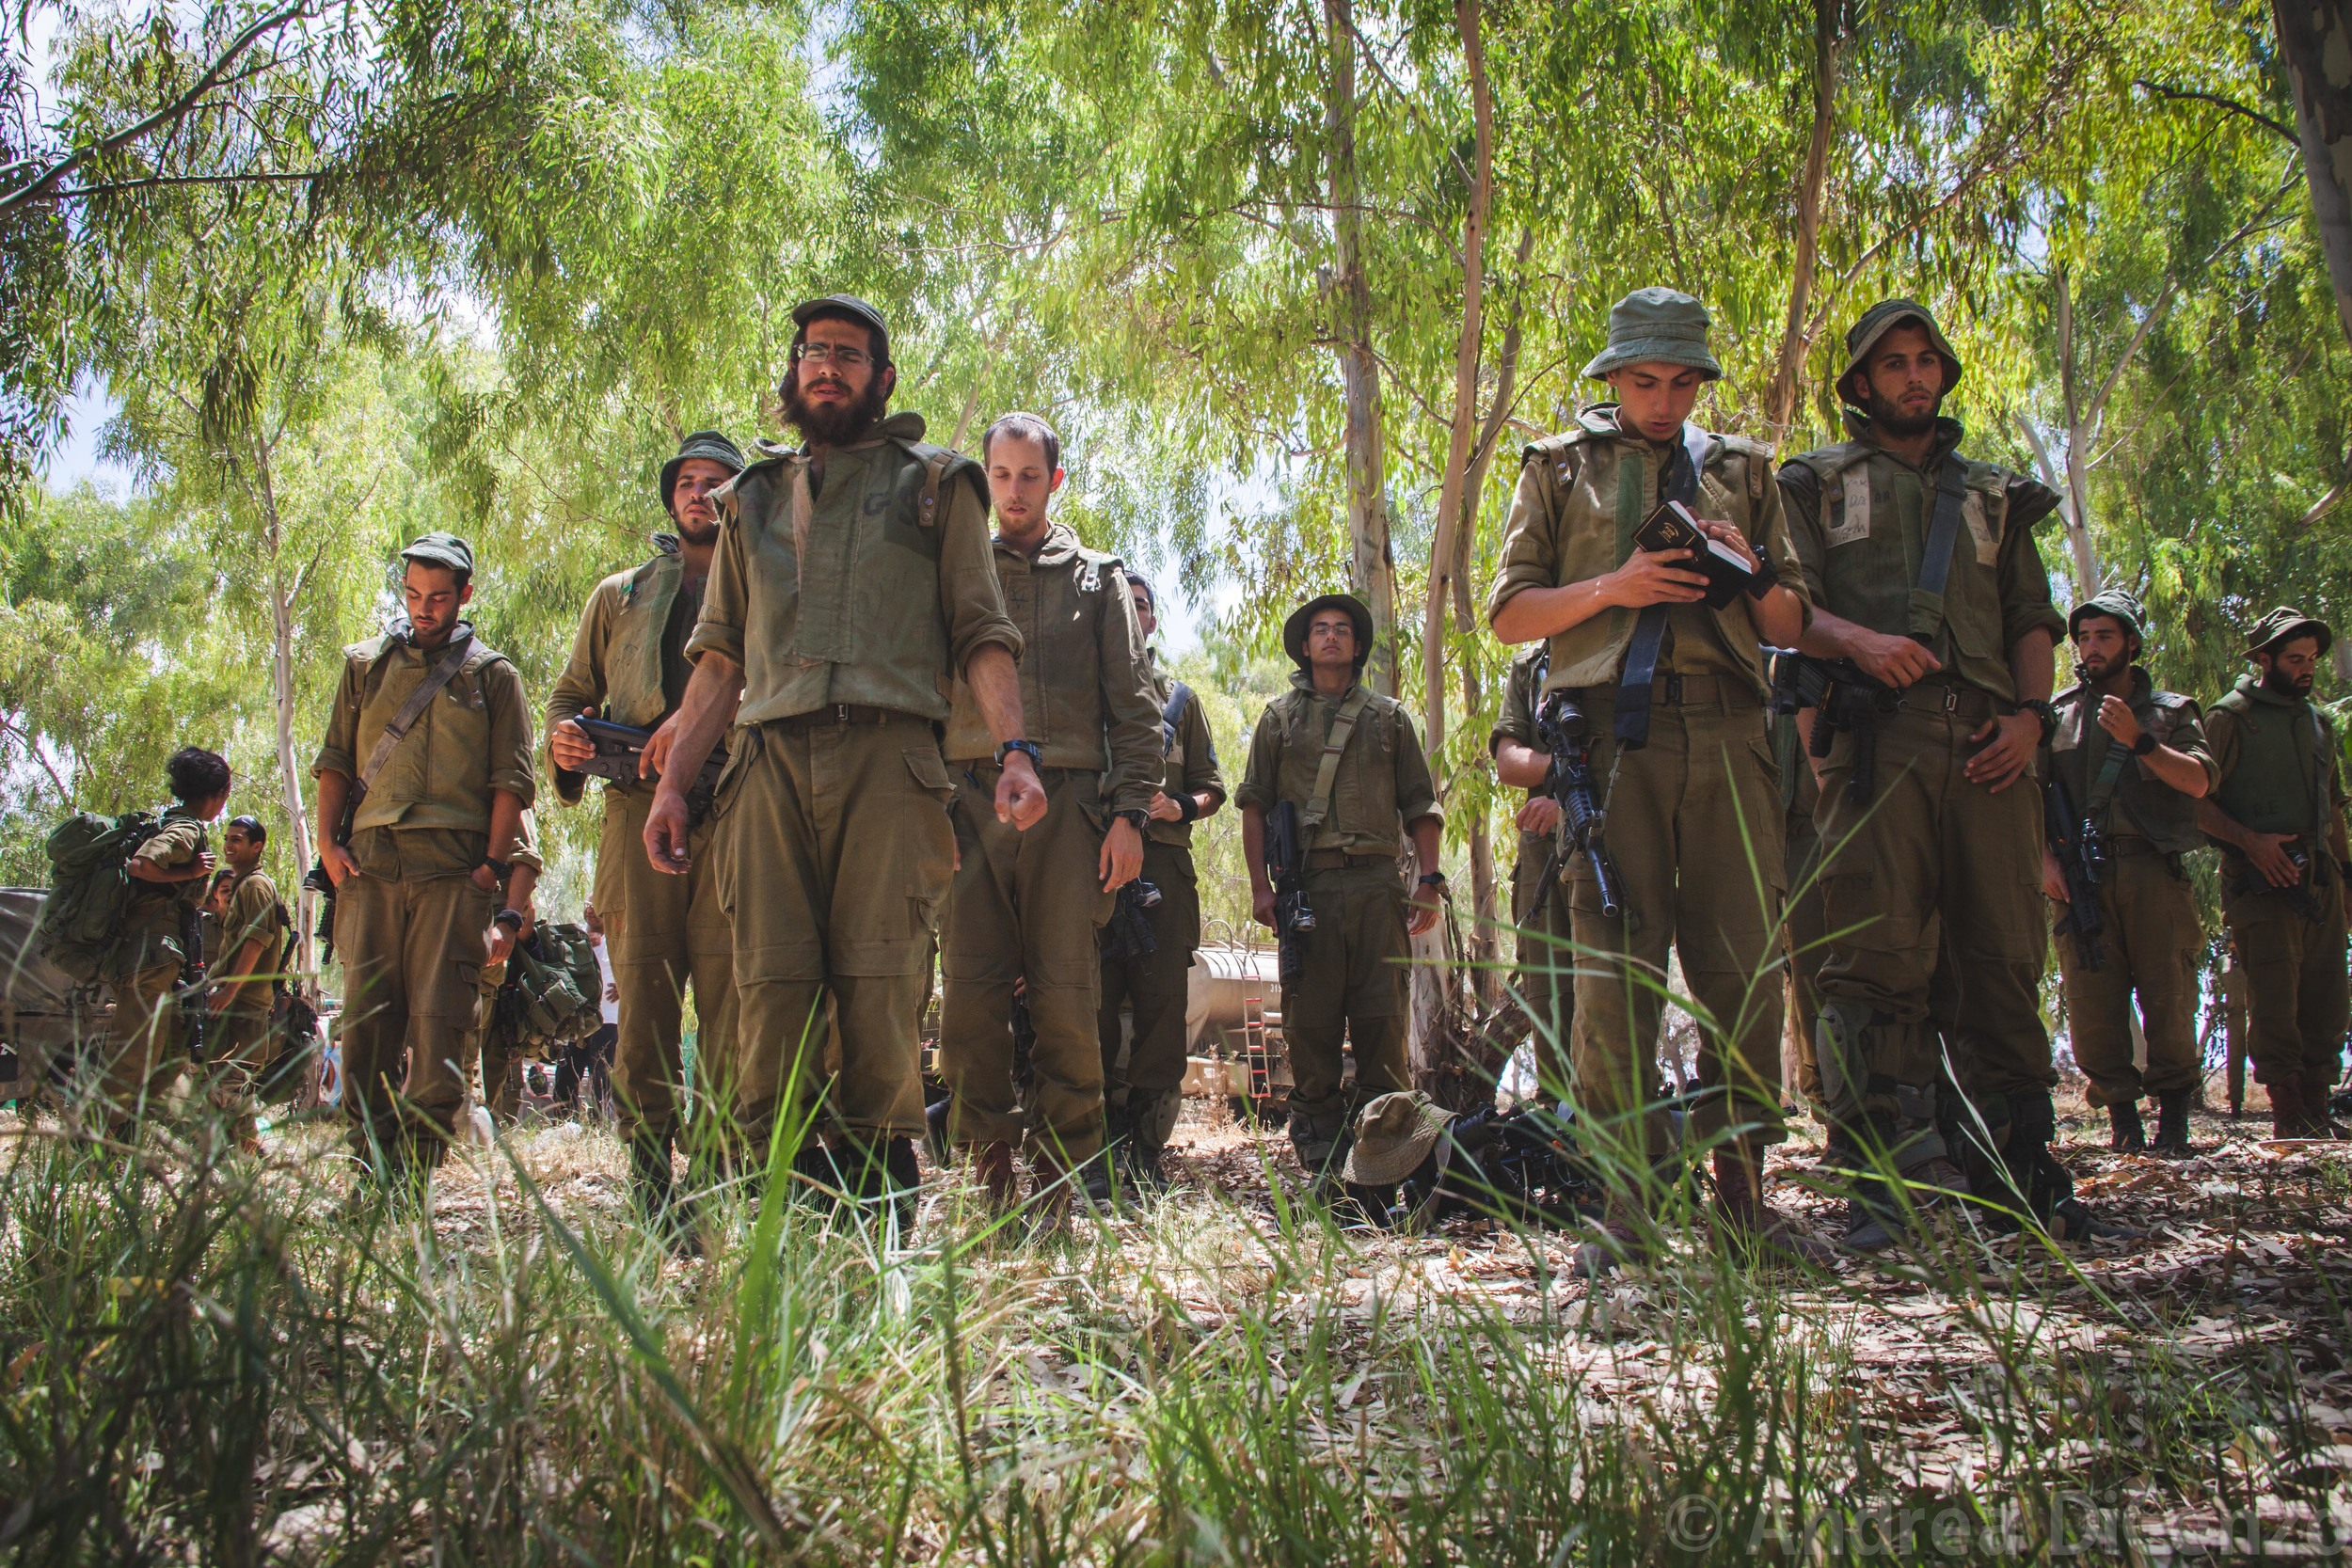 Israeli soldiers pray before their deployment into Gaza during Operation Protective Edge.